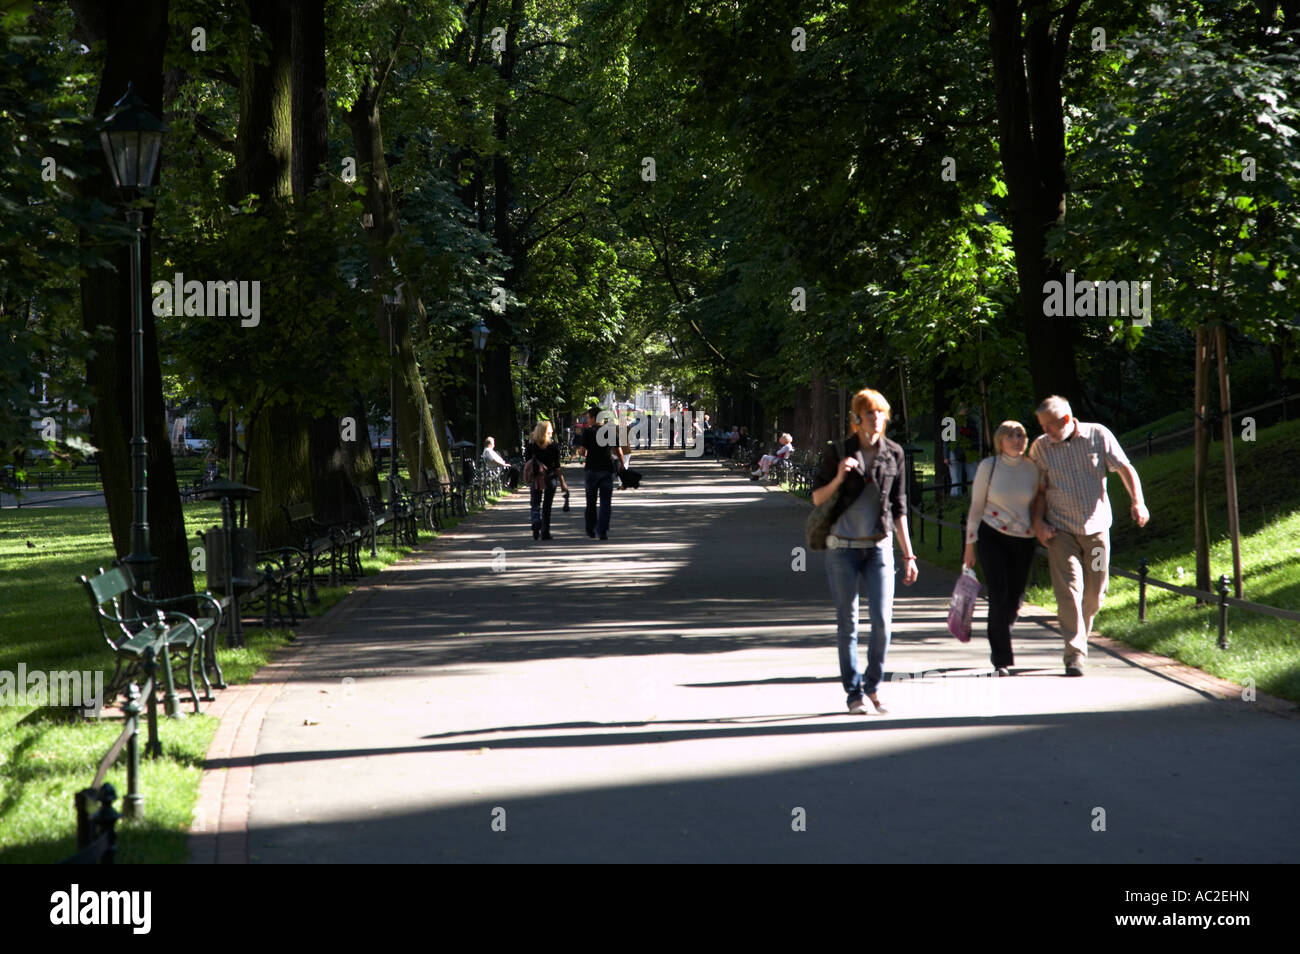 people walking along the footpath through the planty public parks in Krakow - Stock Image